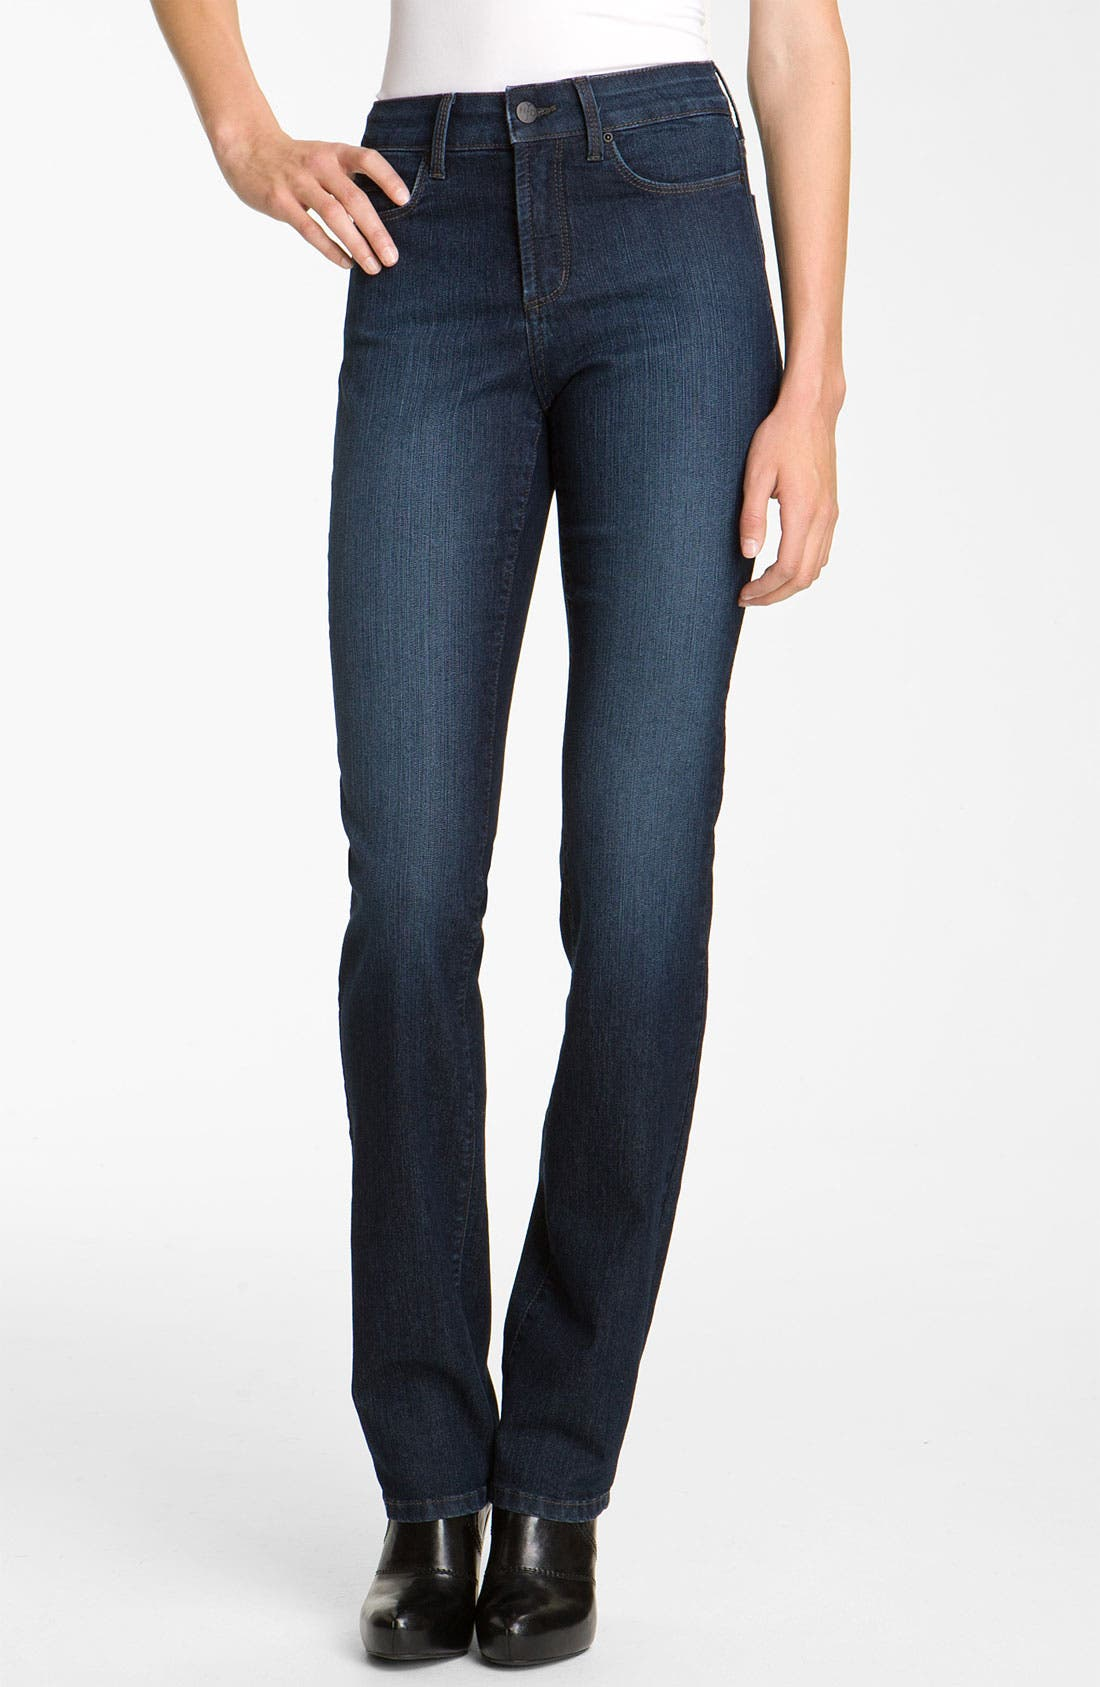 Alternate Image 1 Selected - NYDJ 'Marilyn' Straight Leg Stretch Jeans (Long)